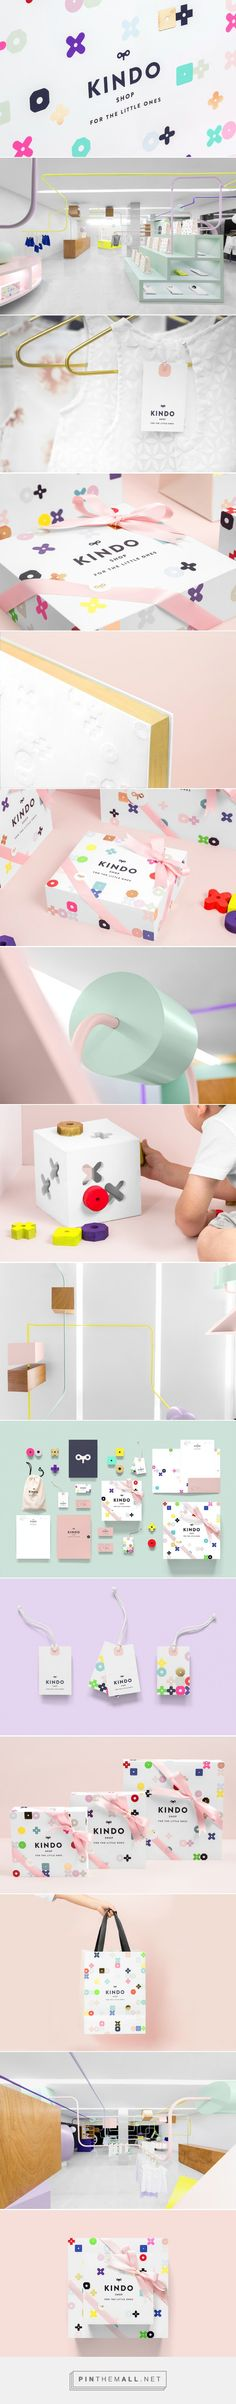 Kindo #Kids #Clothing #packaging designed by Anagrama​ - http://www.packagingoftheworld.com/2015/07/kindo.html